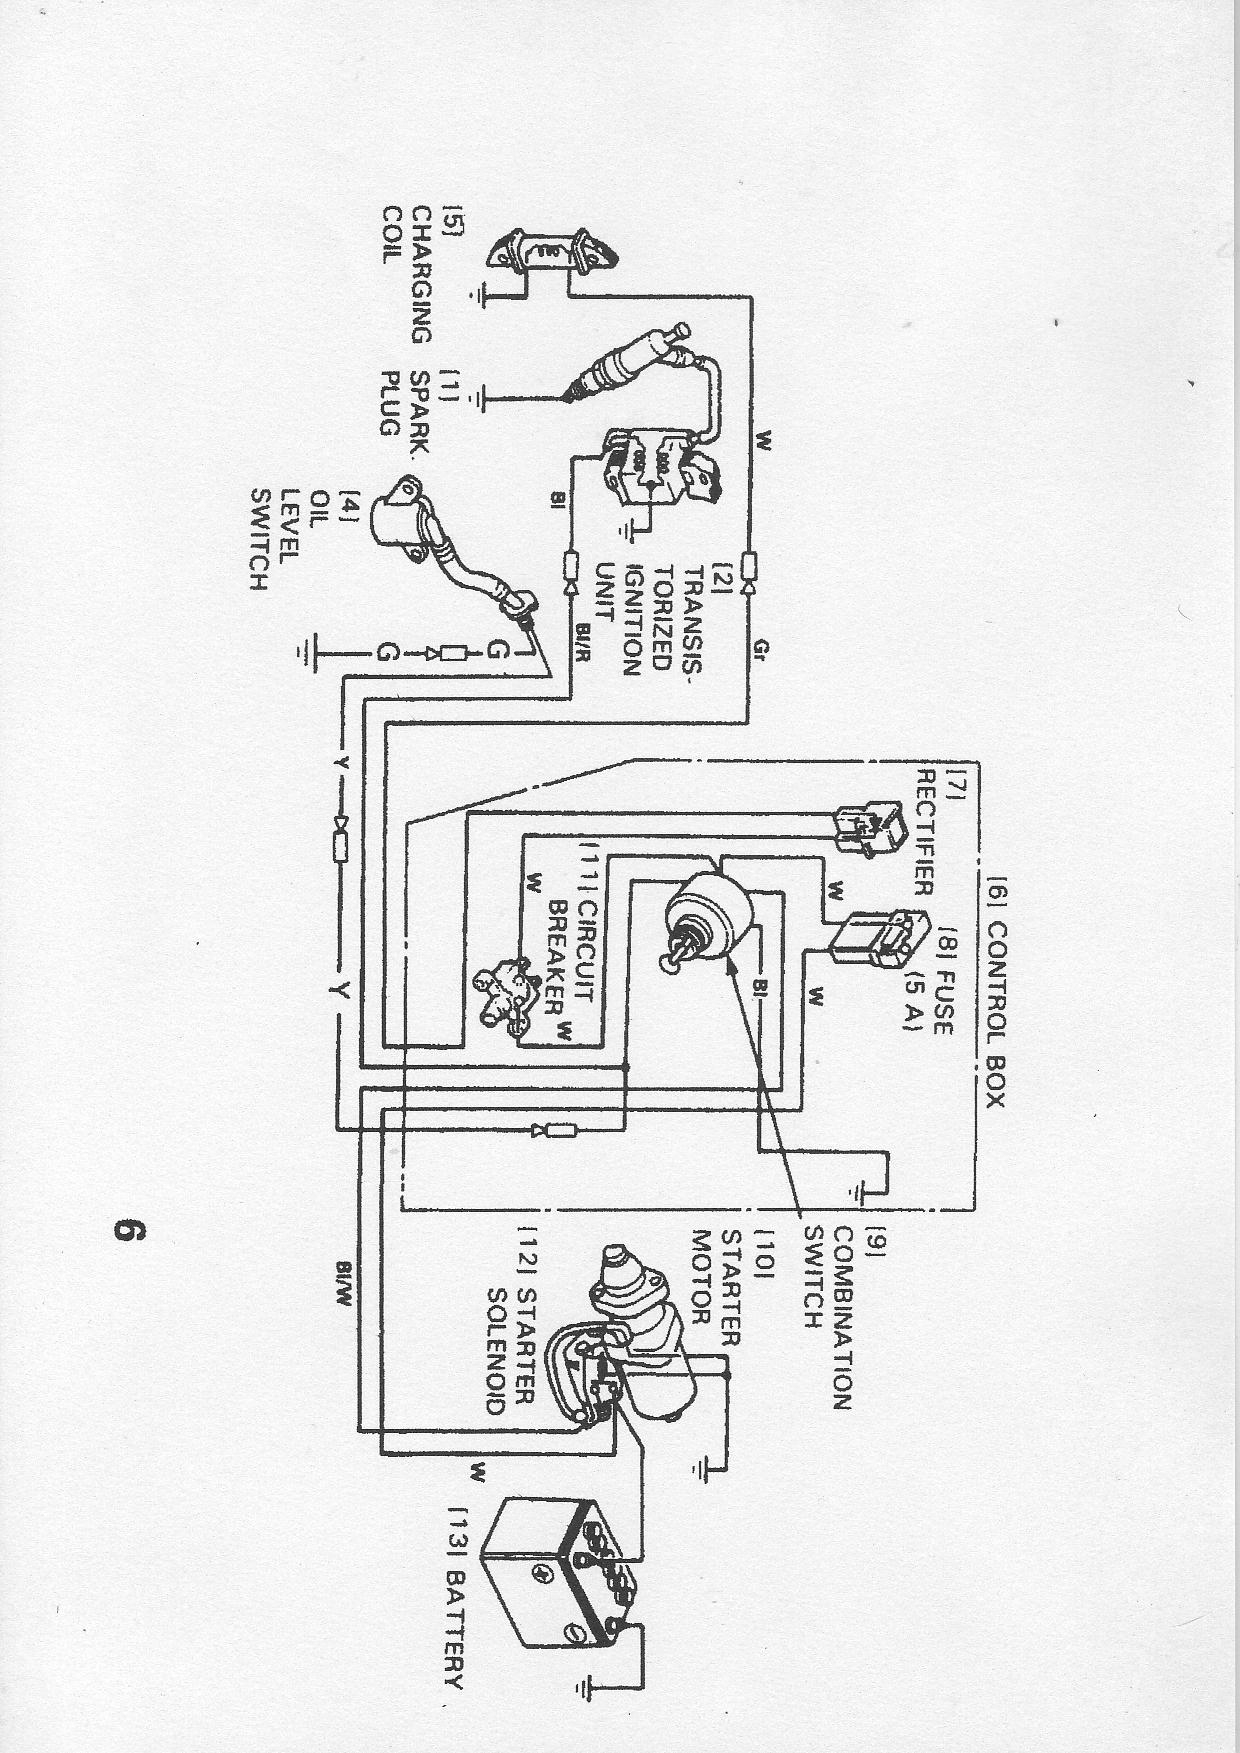 DIAGRAM] Honda Gx160 Wiring Diagram FULL Version HD Quality Wiring Diagram  - UMLDIAGRAMTOOL.FONDAZIONEFERRAMONTI.ITfondazioneferramonti